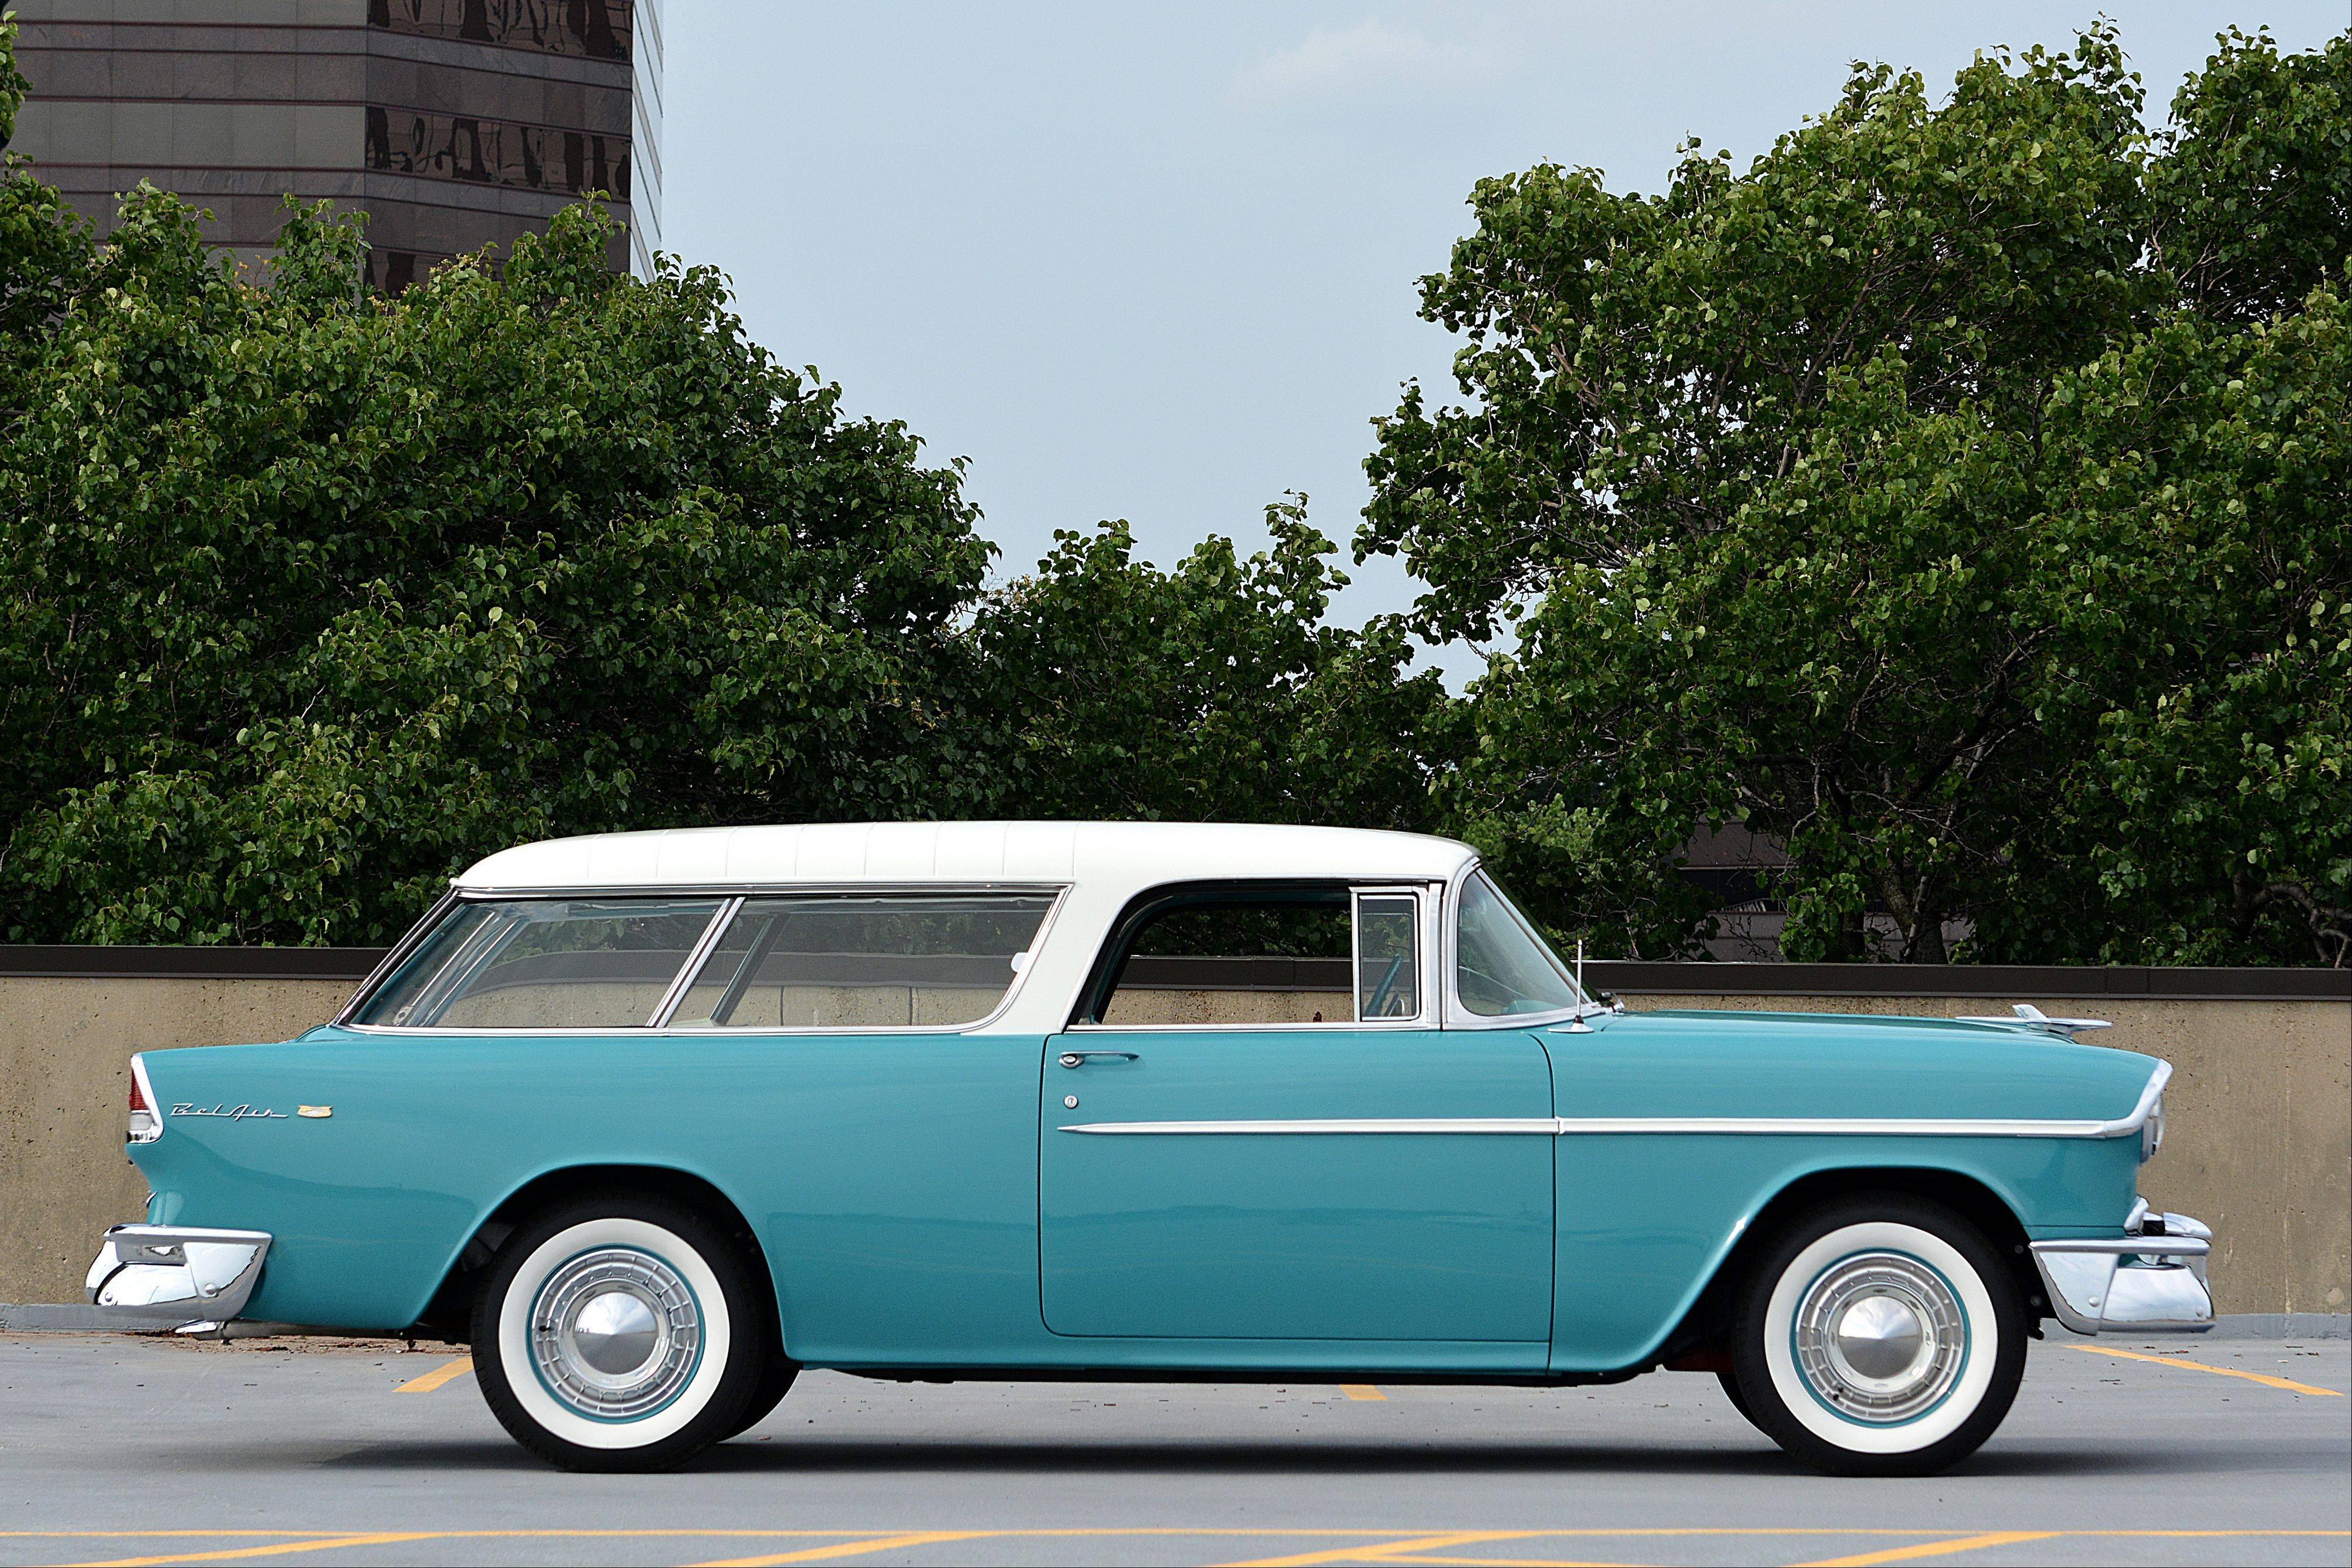 The Millers drive their restored 1965 Nomad to conventions across the U.S. and Canada.